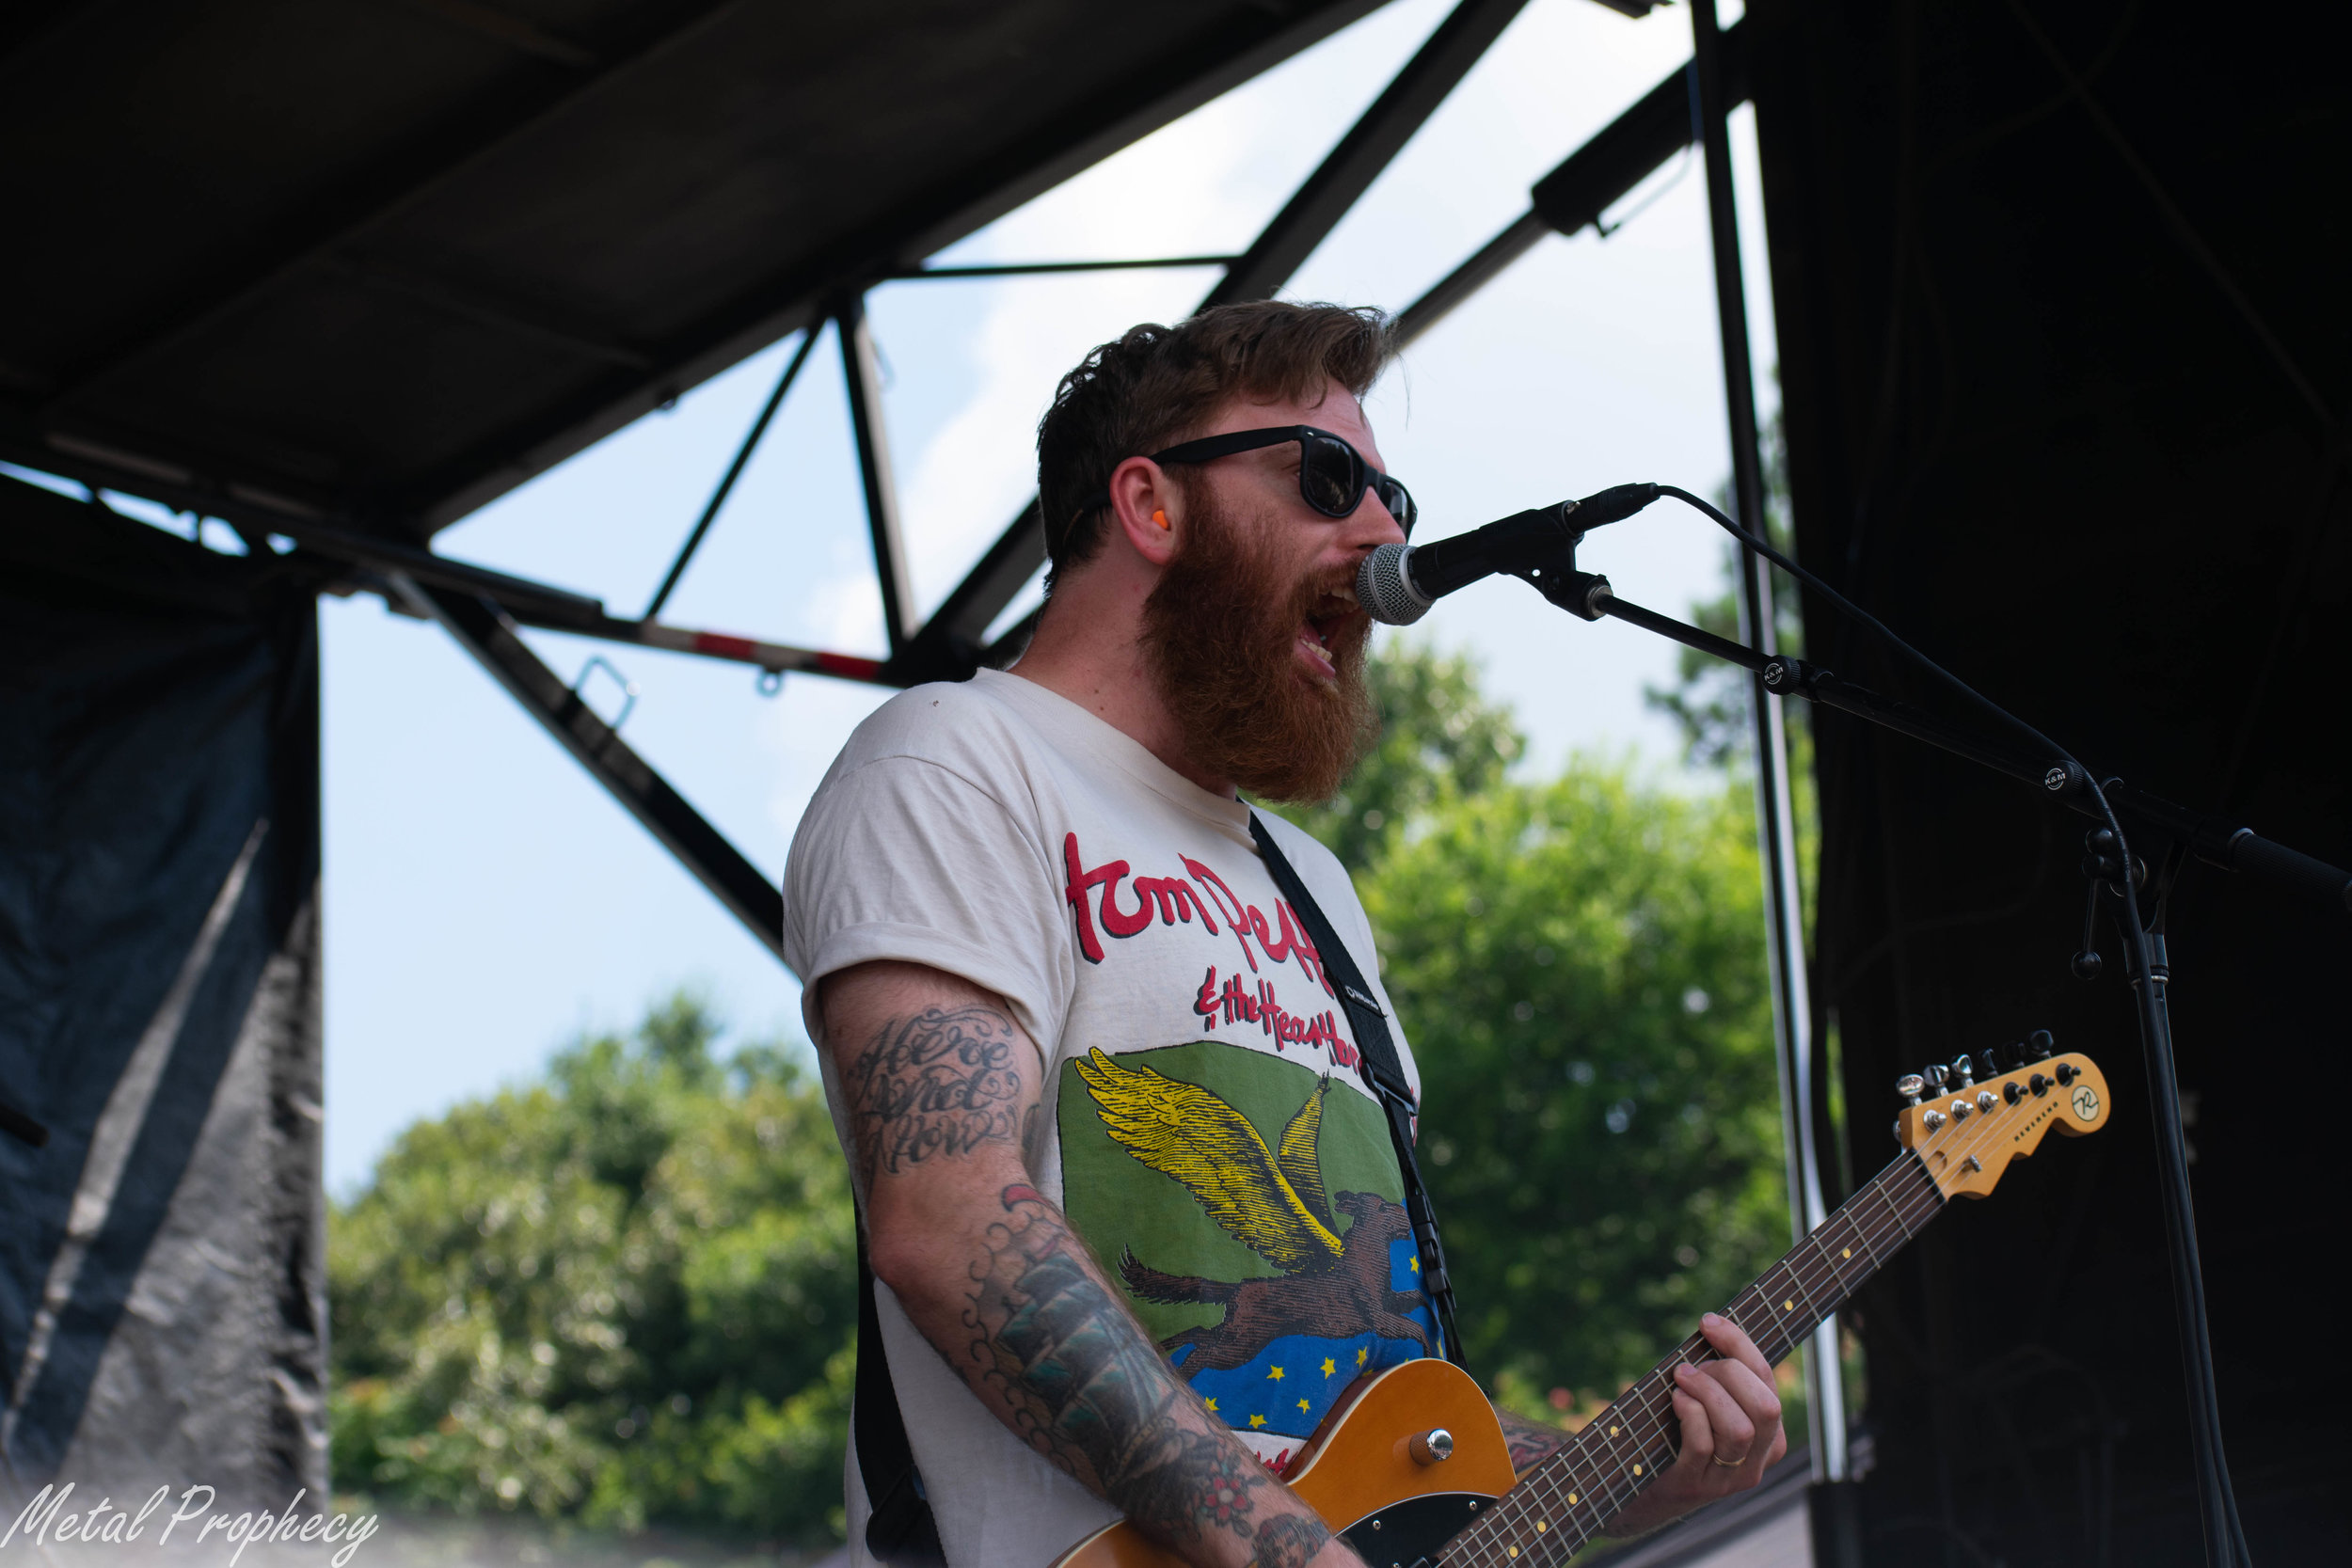 Four Year Strong at Rockstar Energy Disrupt Festival